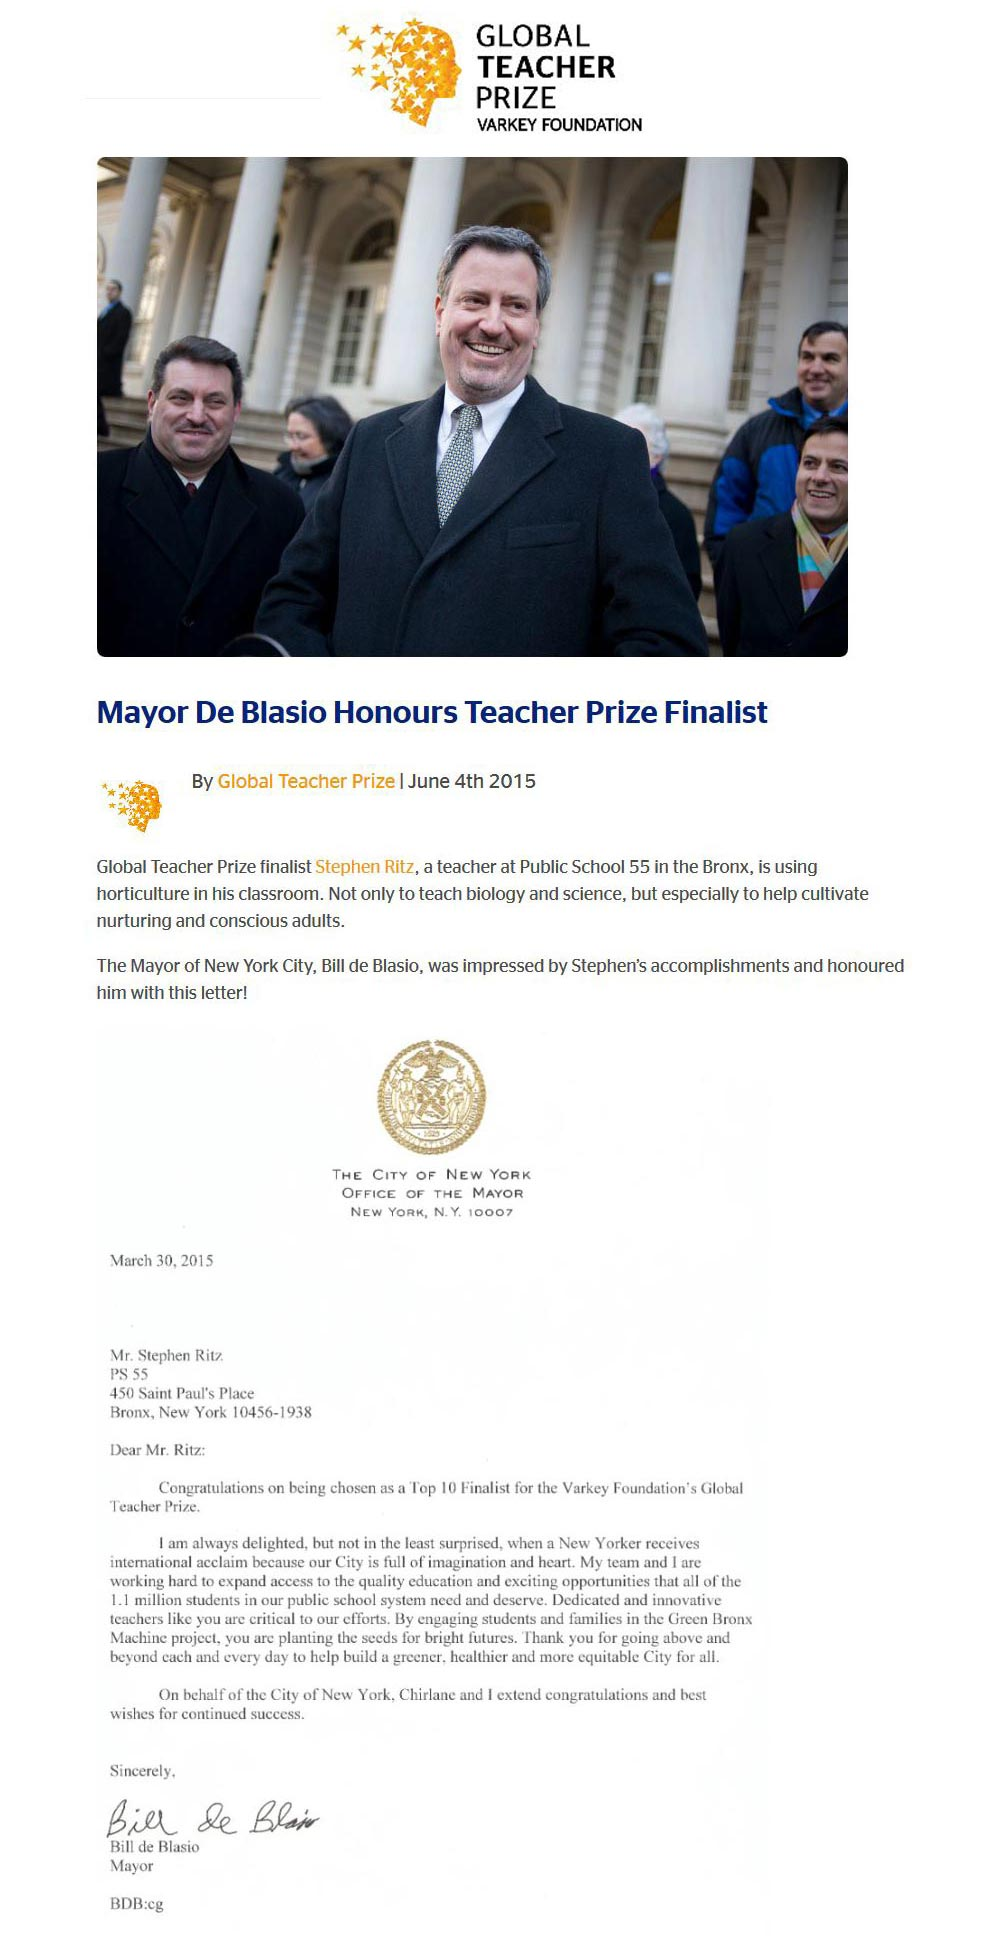 Global Teacher Prize - Mayor De Blasio Honours Teacher Prize Finalist